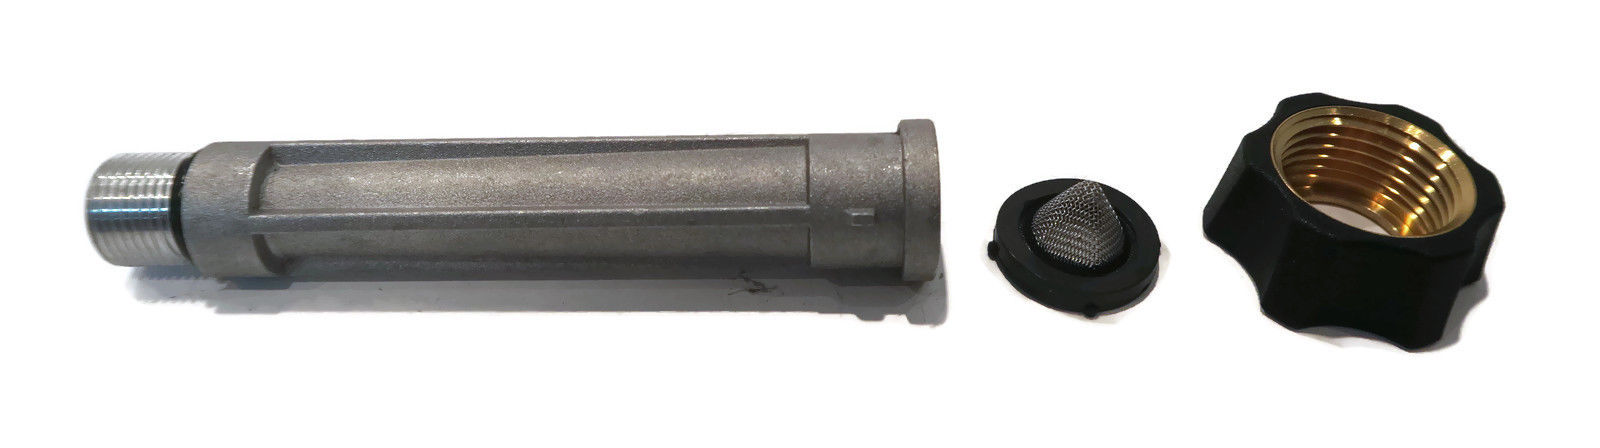 2 WATER INLET TUBE for Annovi Reverberi 308861004 46-1179 Pressure Washer Pump